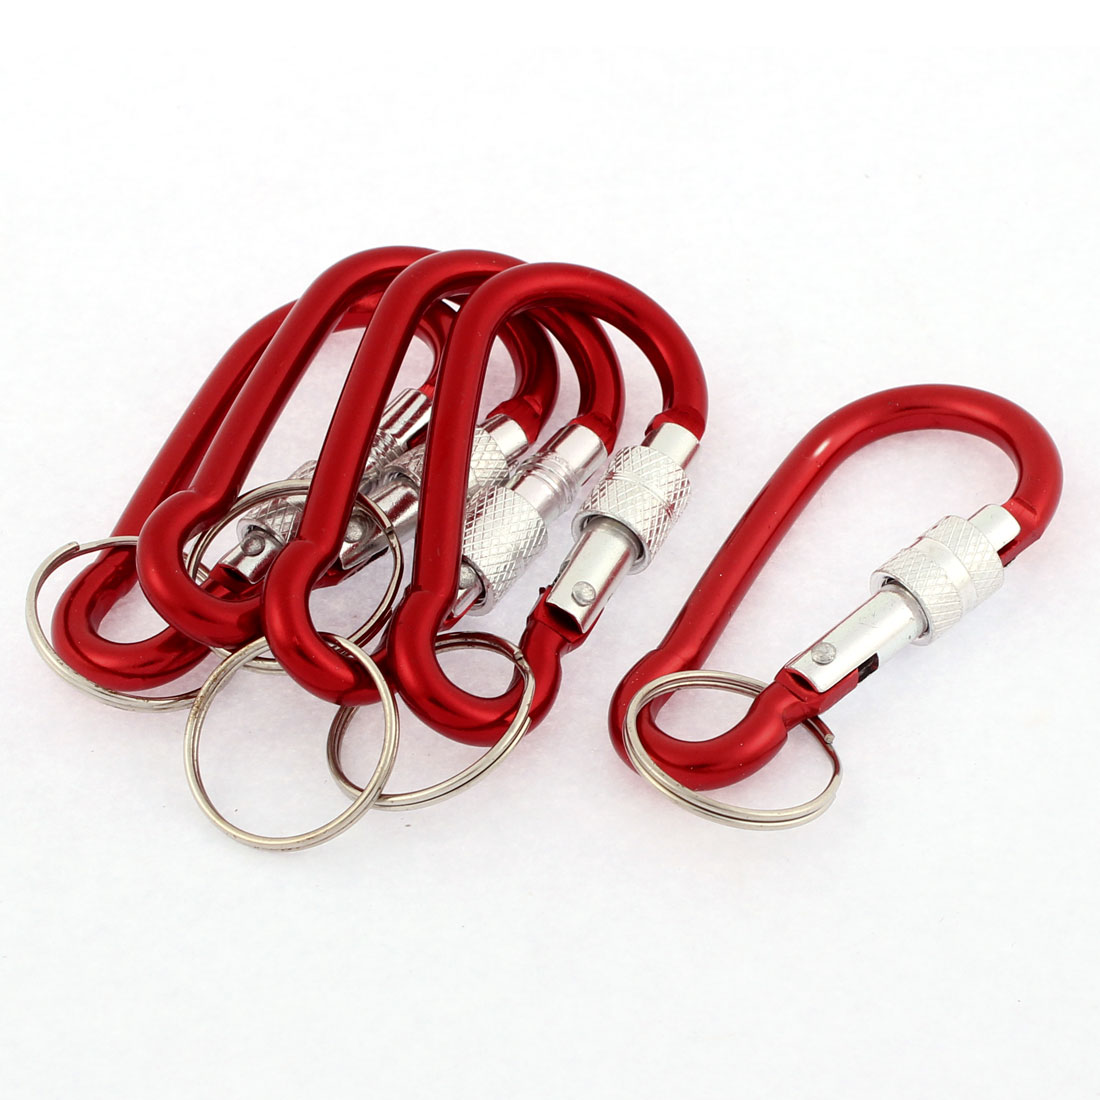 Outdoor Fishing Metal Screw Locked Carabiner Hook Key Holder Keyring Burgundy 5pcs